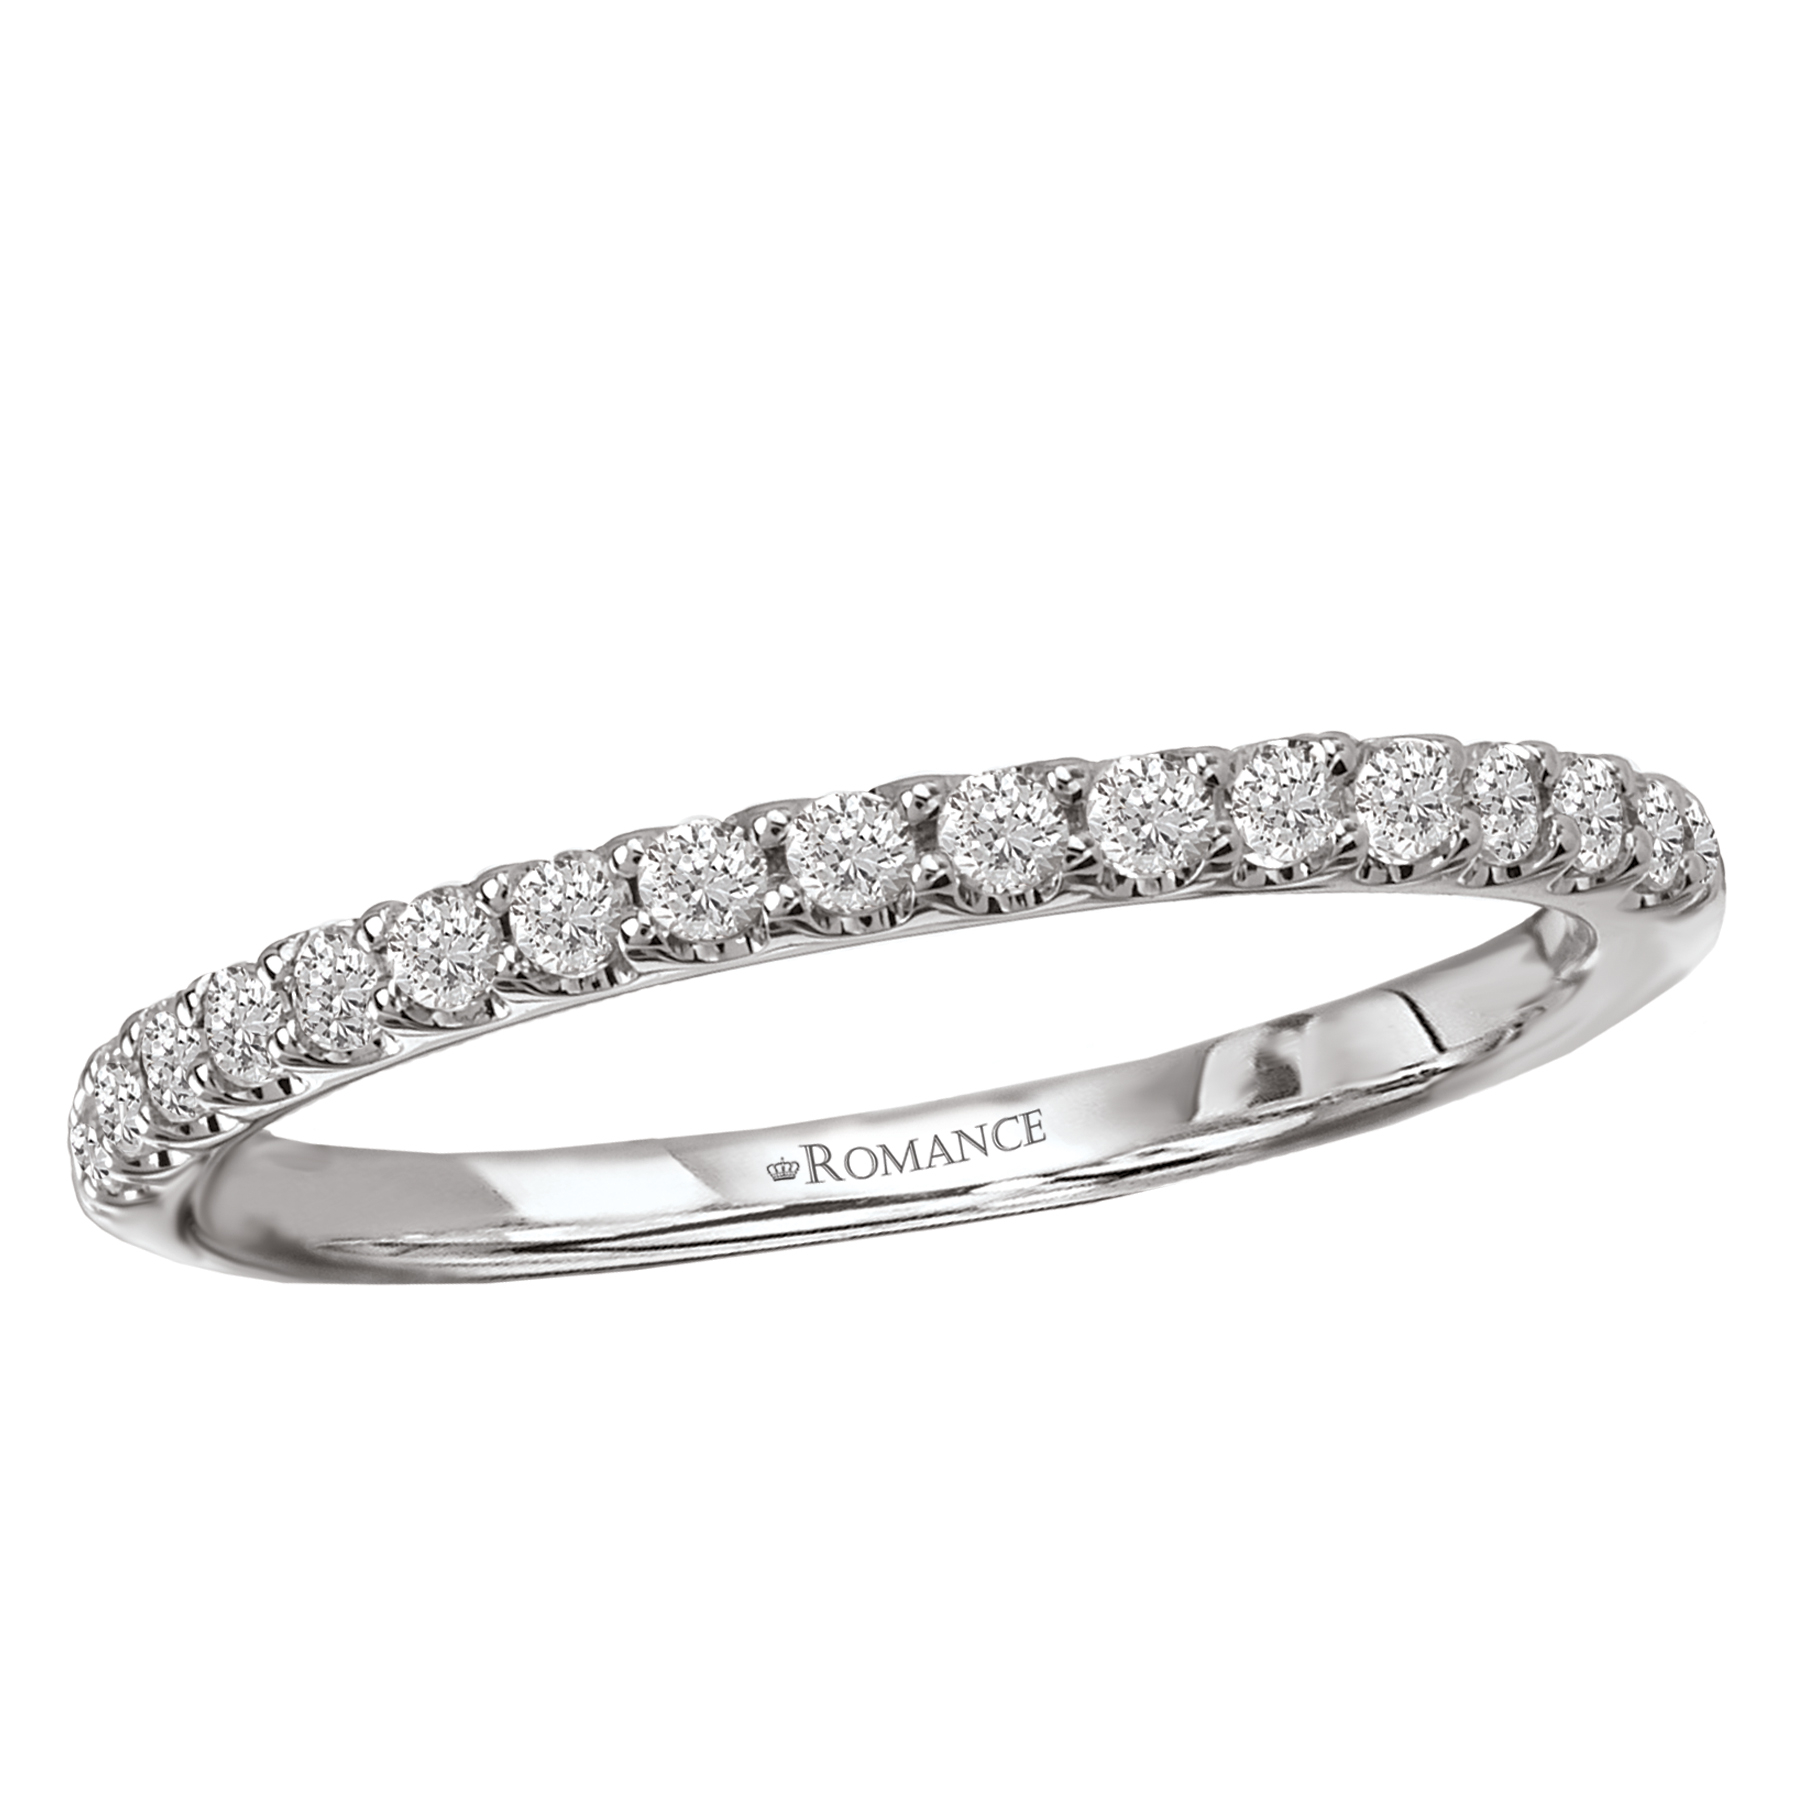 Romance Wedding Bands 117474-W product image